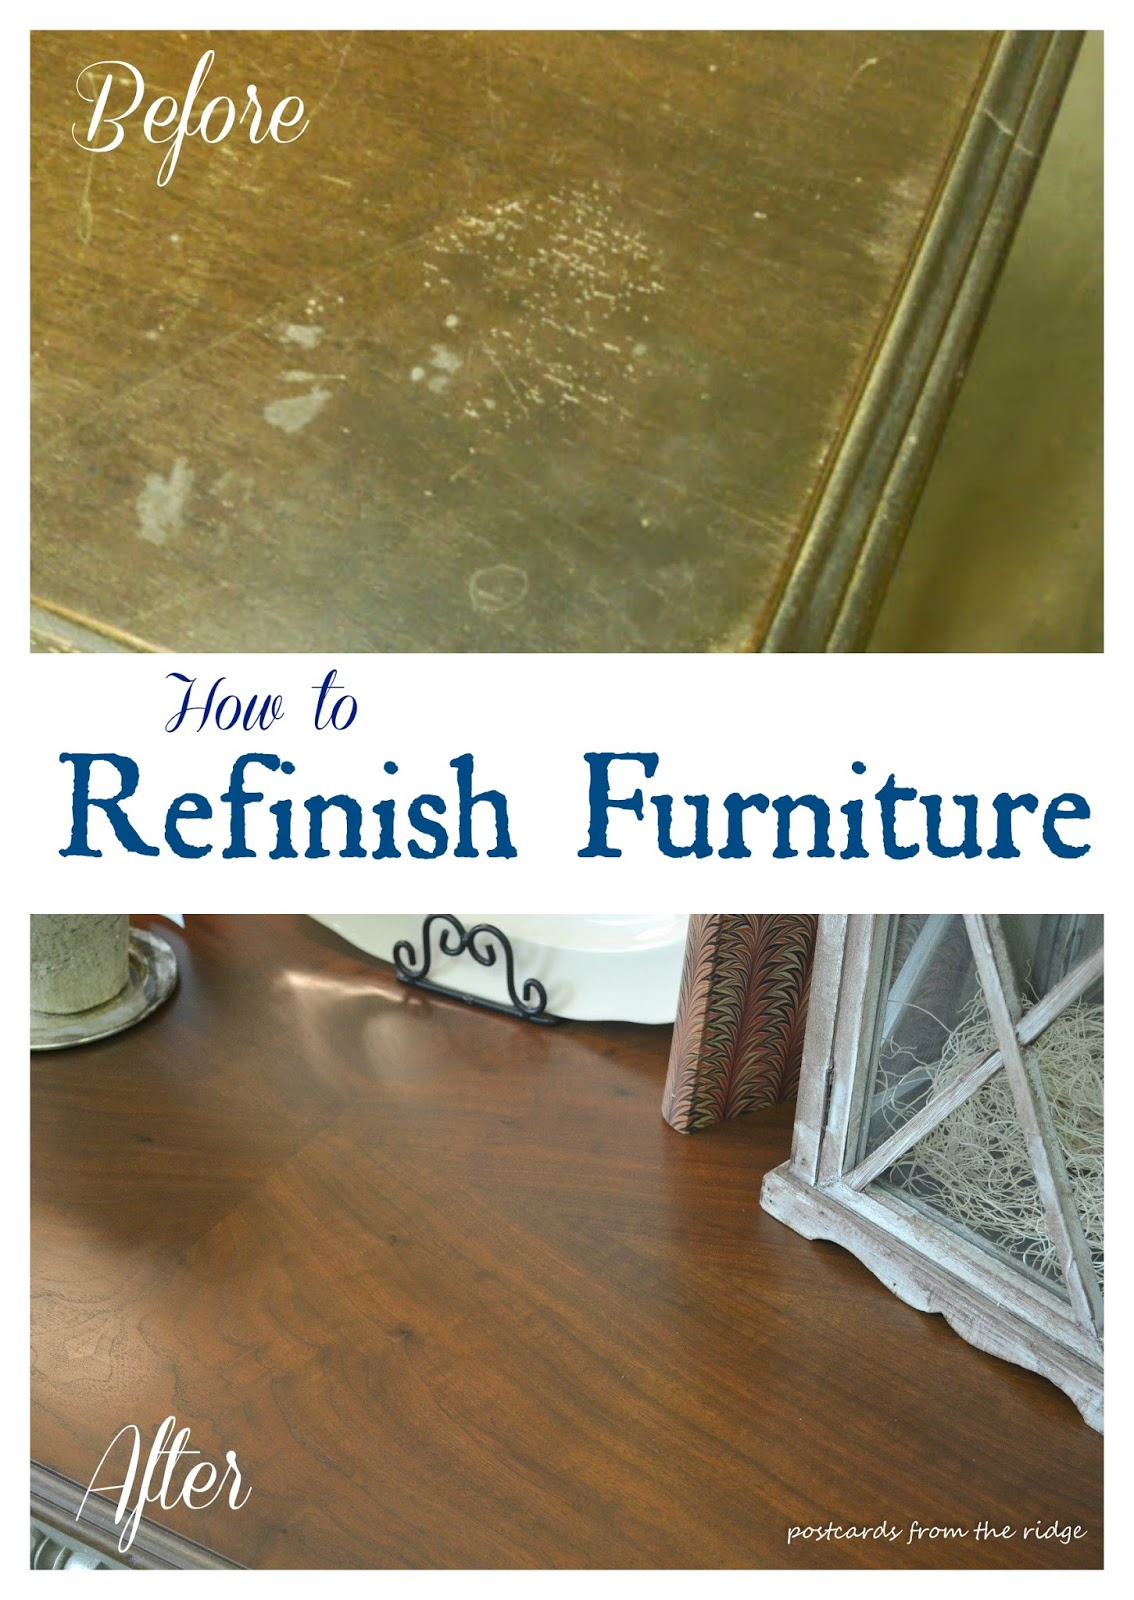 Postcards from the Ridge: How to Refinish Wood Furniture